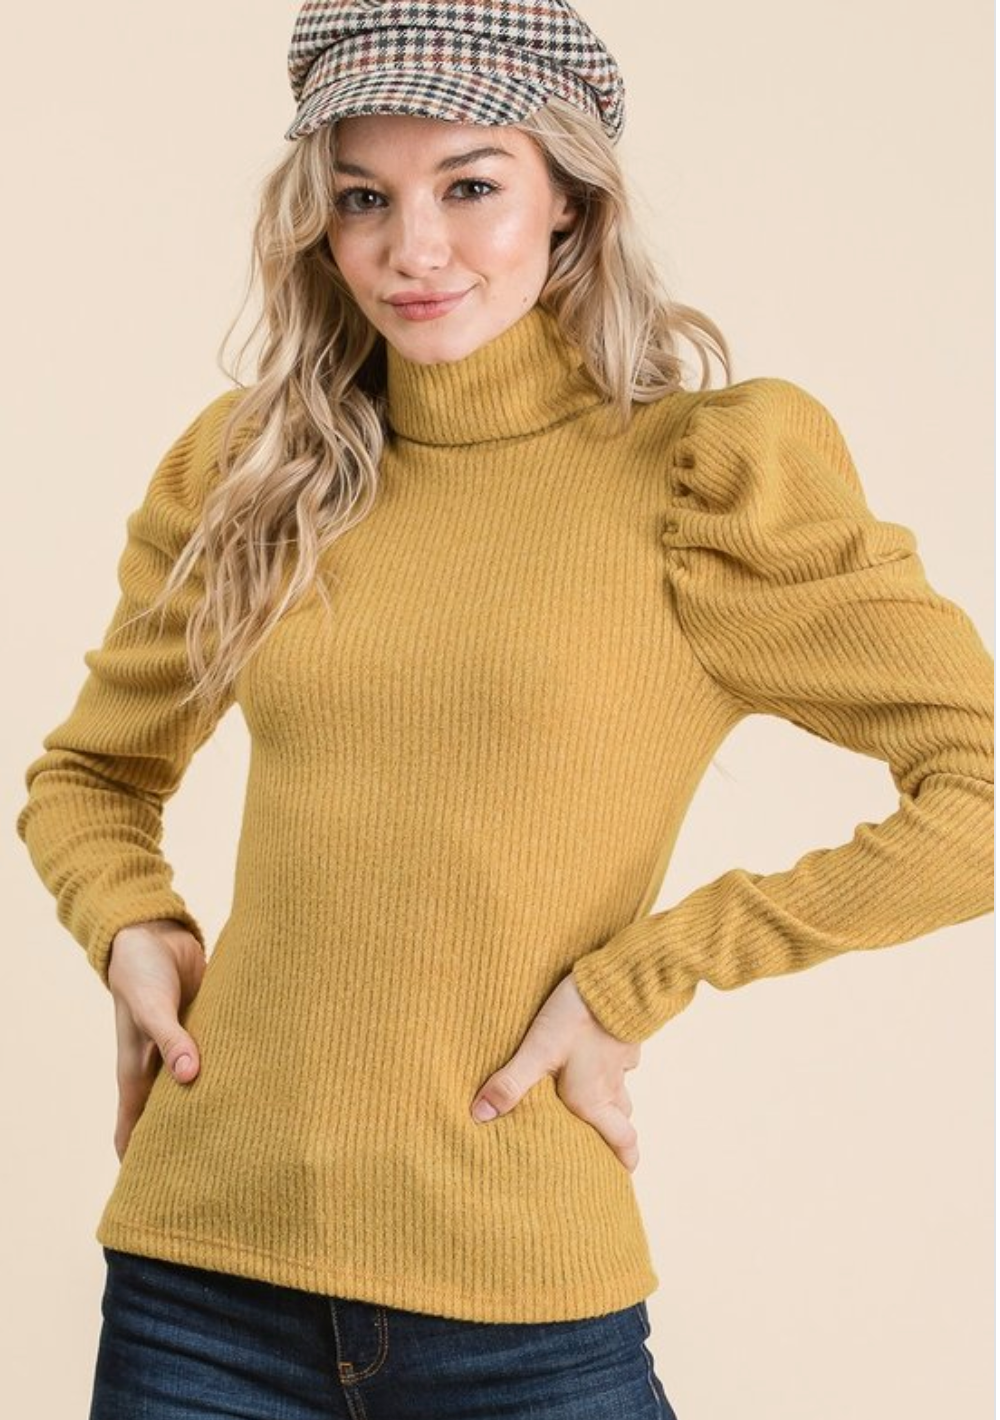 Puff Up Turtle Neck In Mustard